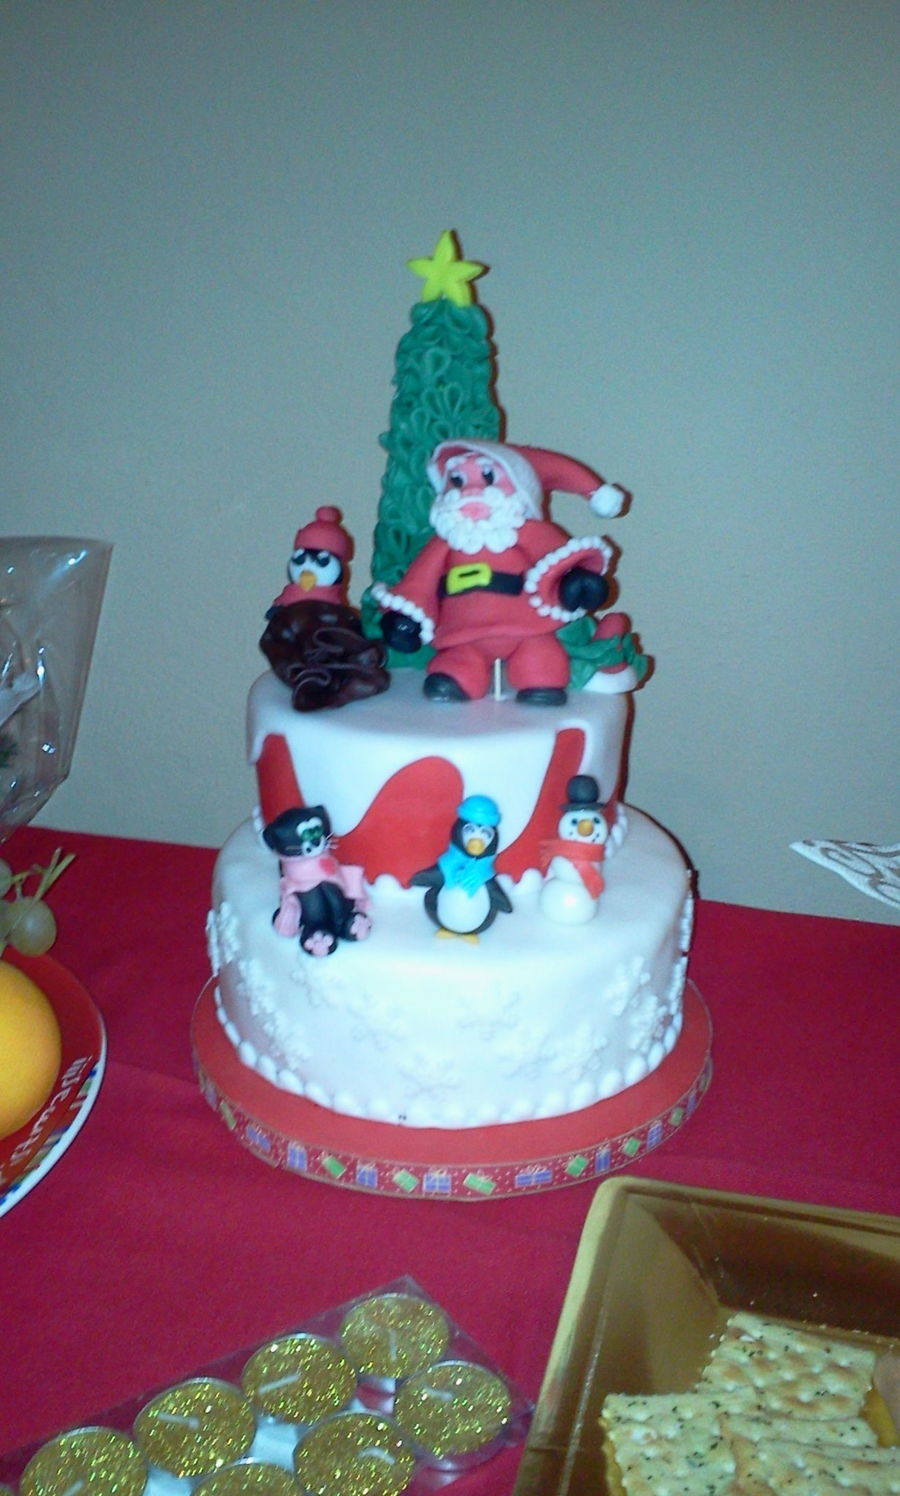 Merry Christmas!!! on Cake Central